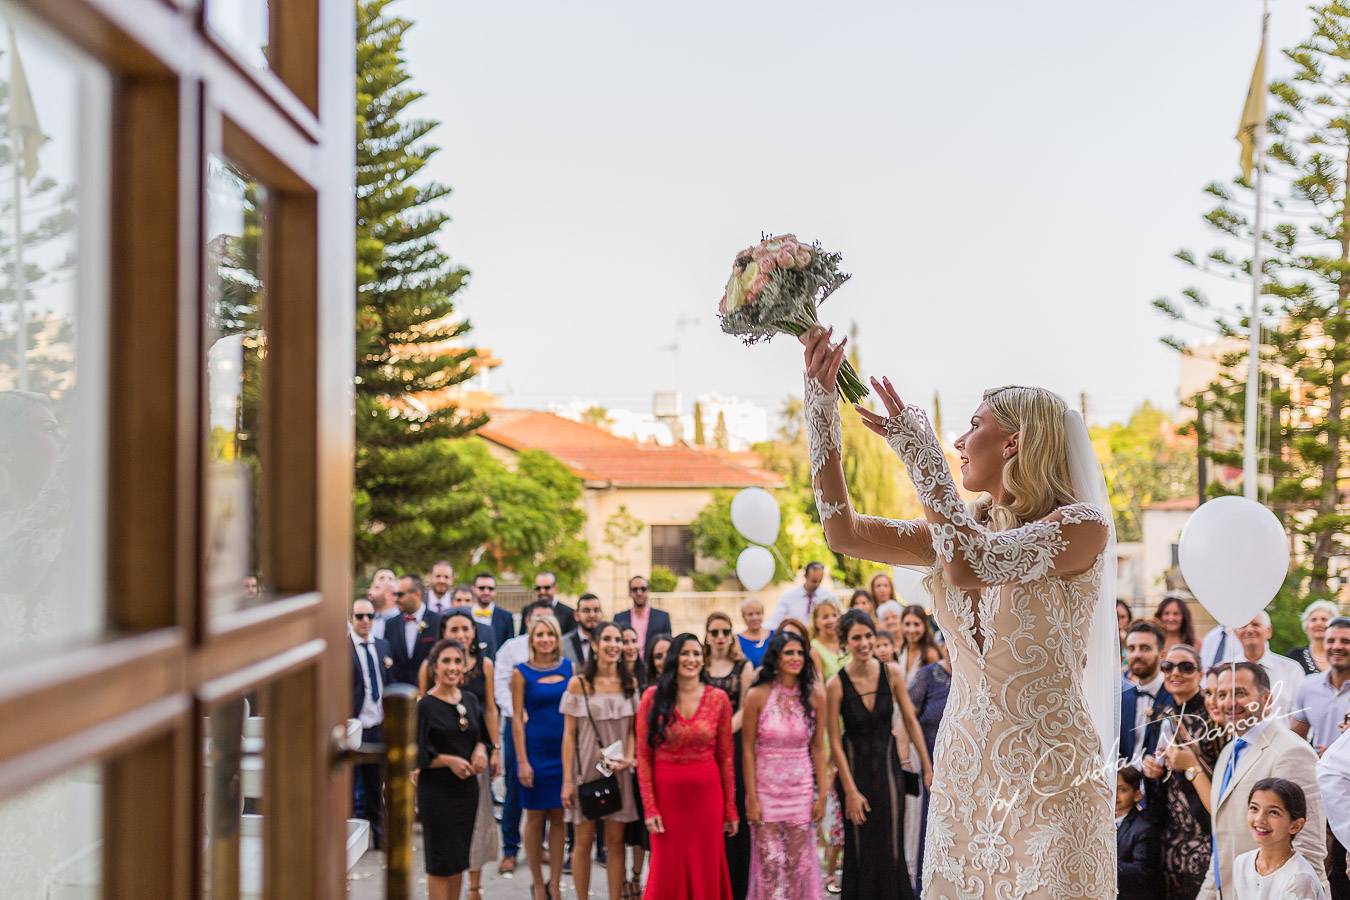 Immediate moments after the church ceremony captured at an elegant and romantic wedding at Elias Beach Hotel by Cristian Dascalu.